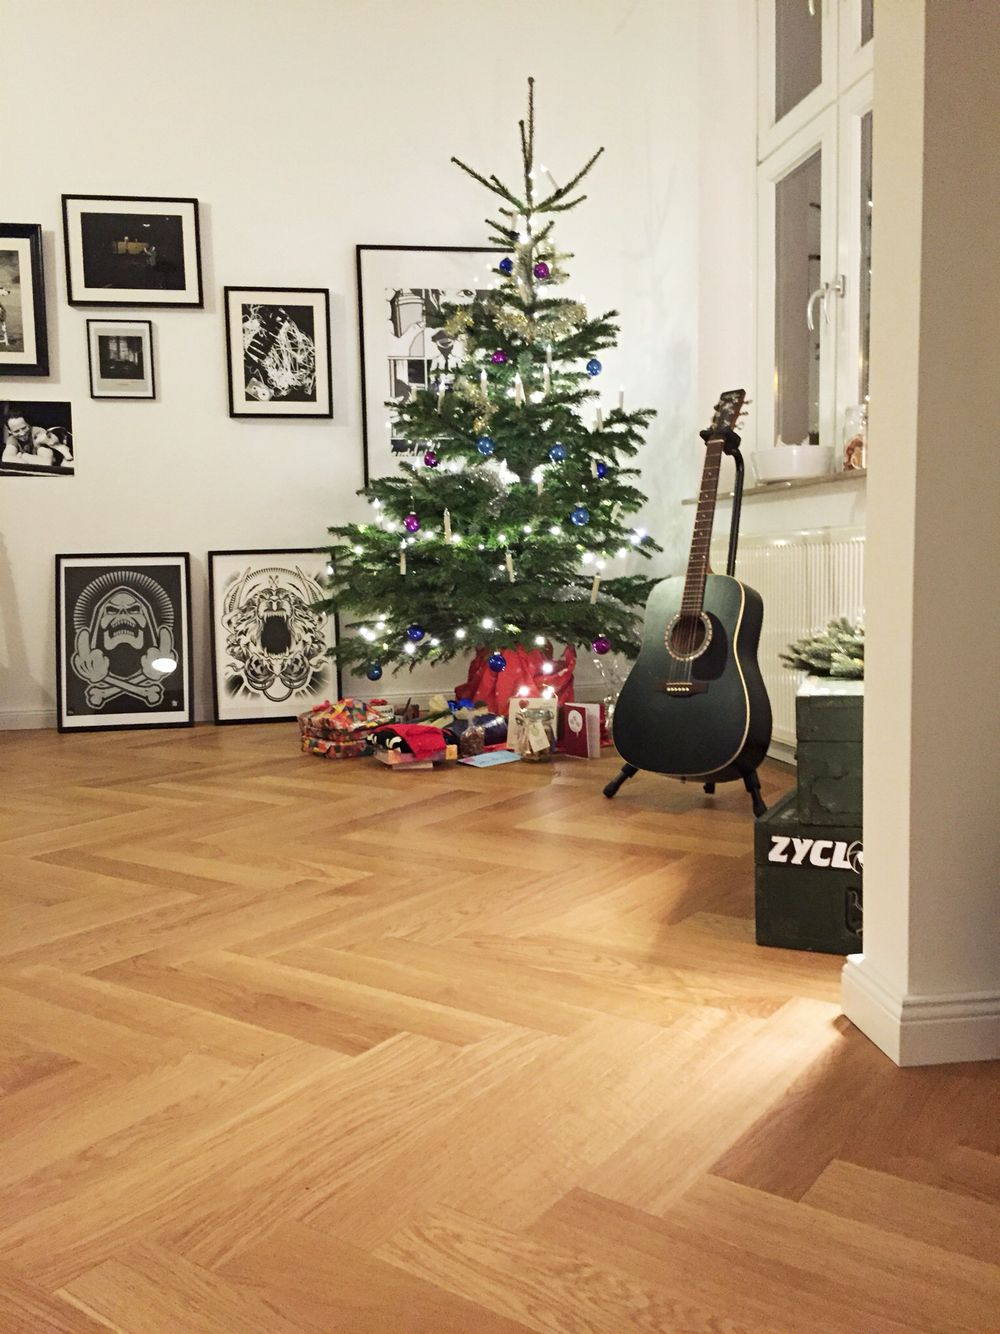 Elegant Love This Style, Christmastree On Perfect Floor :)) Fischgrät Parkett, , Helle